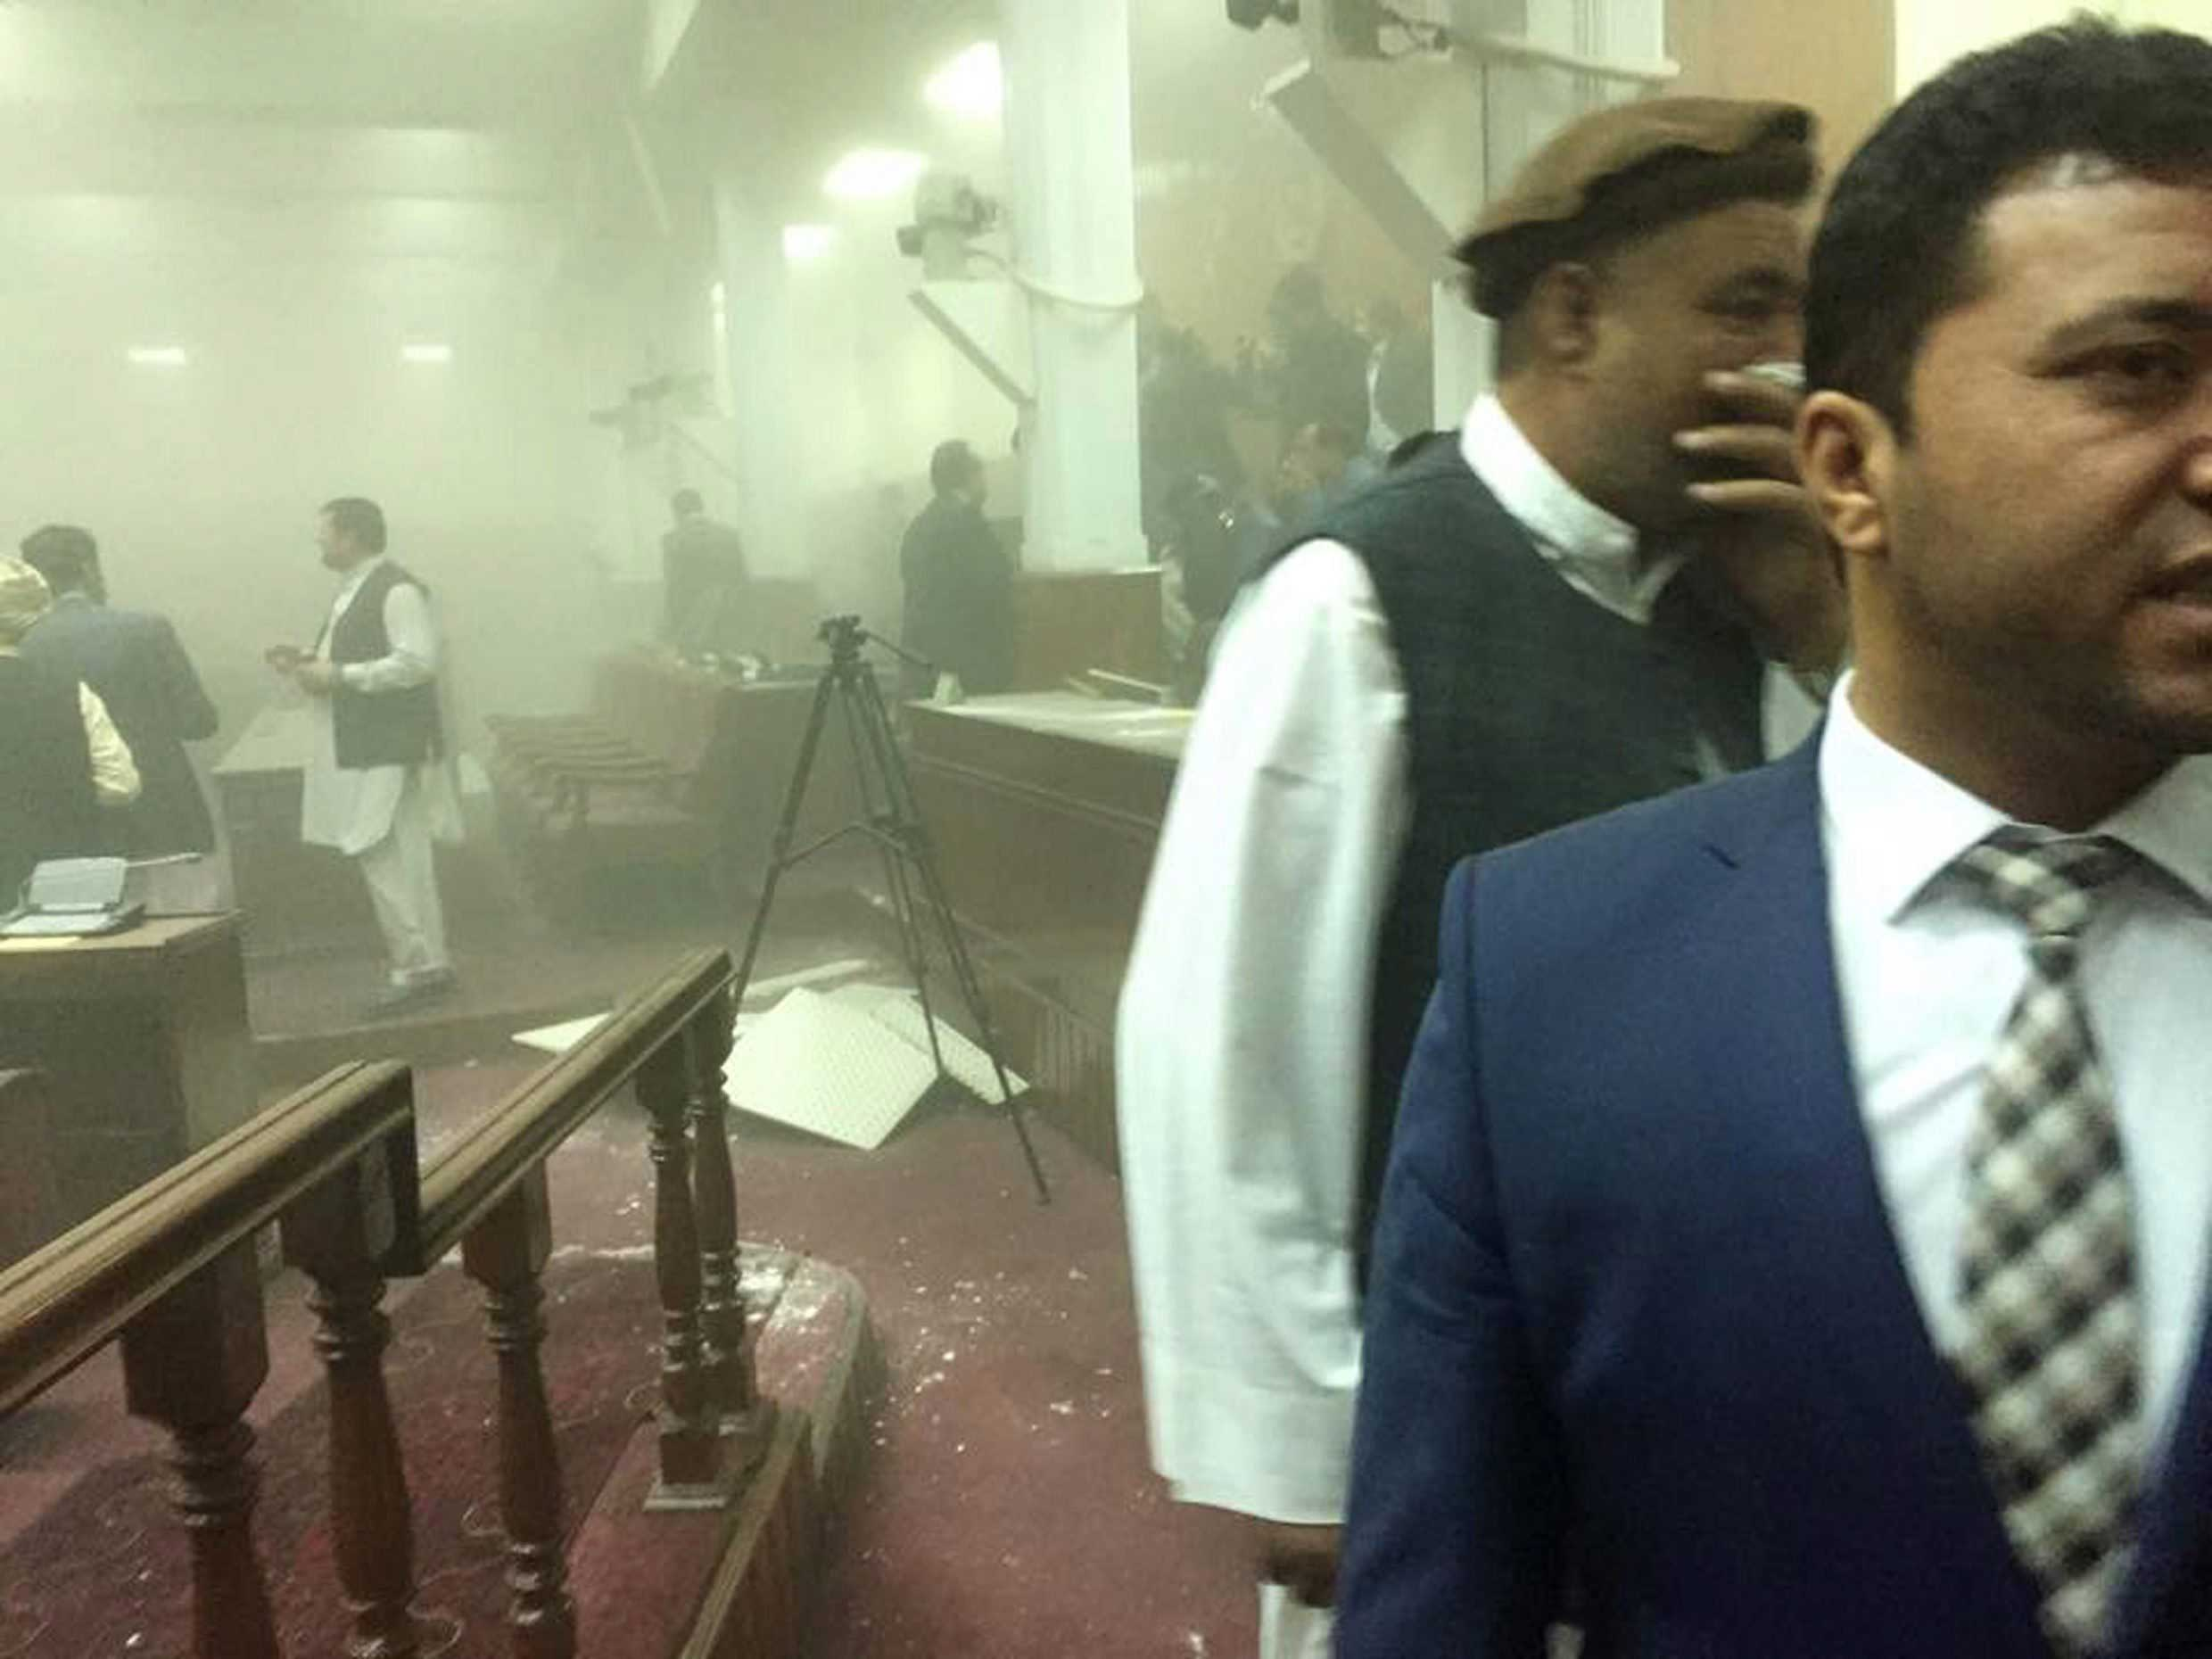 Dr. Najibullah Faiq, shows the scene from inside the Afghan Parliament building following an attack by Taliban militants, in Kabul, Afghanistan on June 22, 2015.